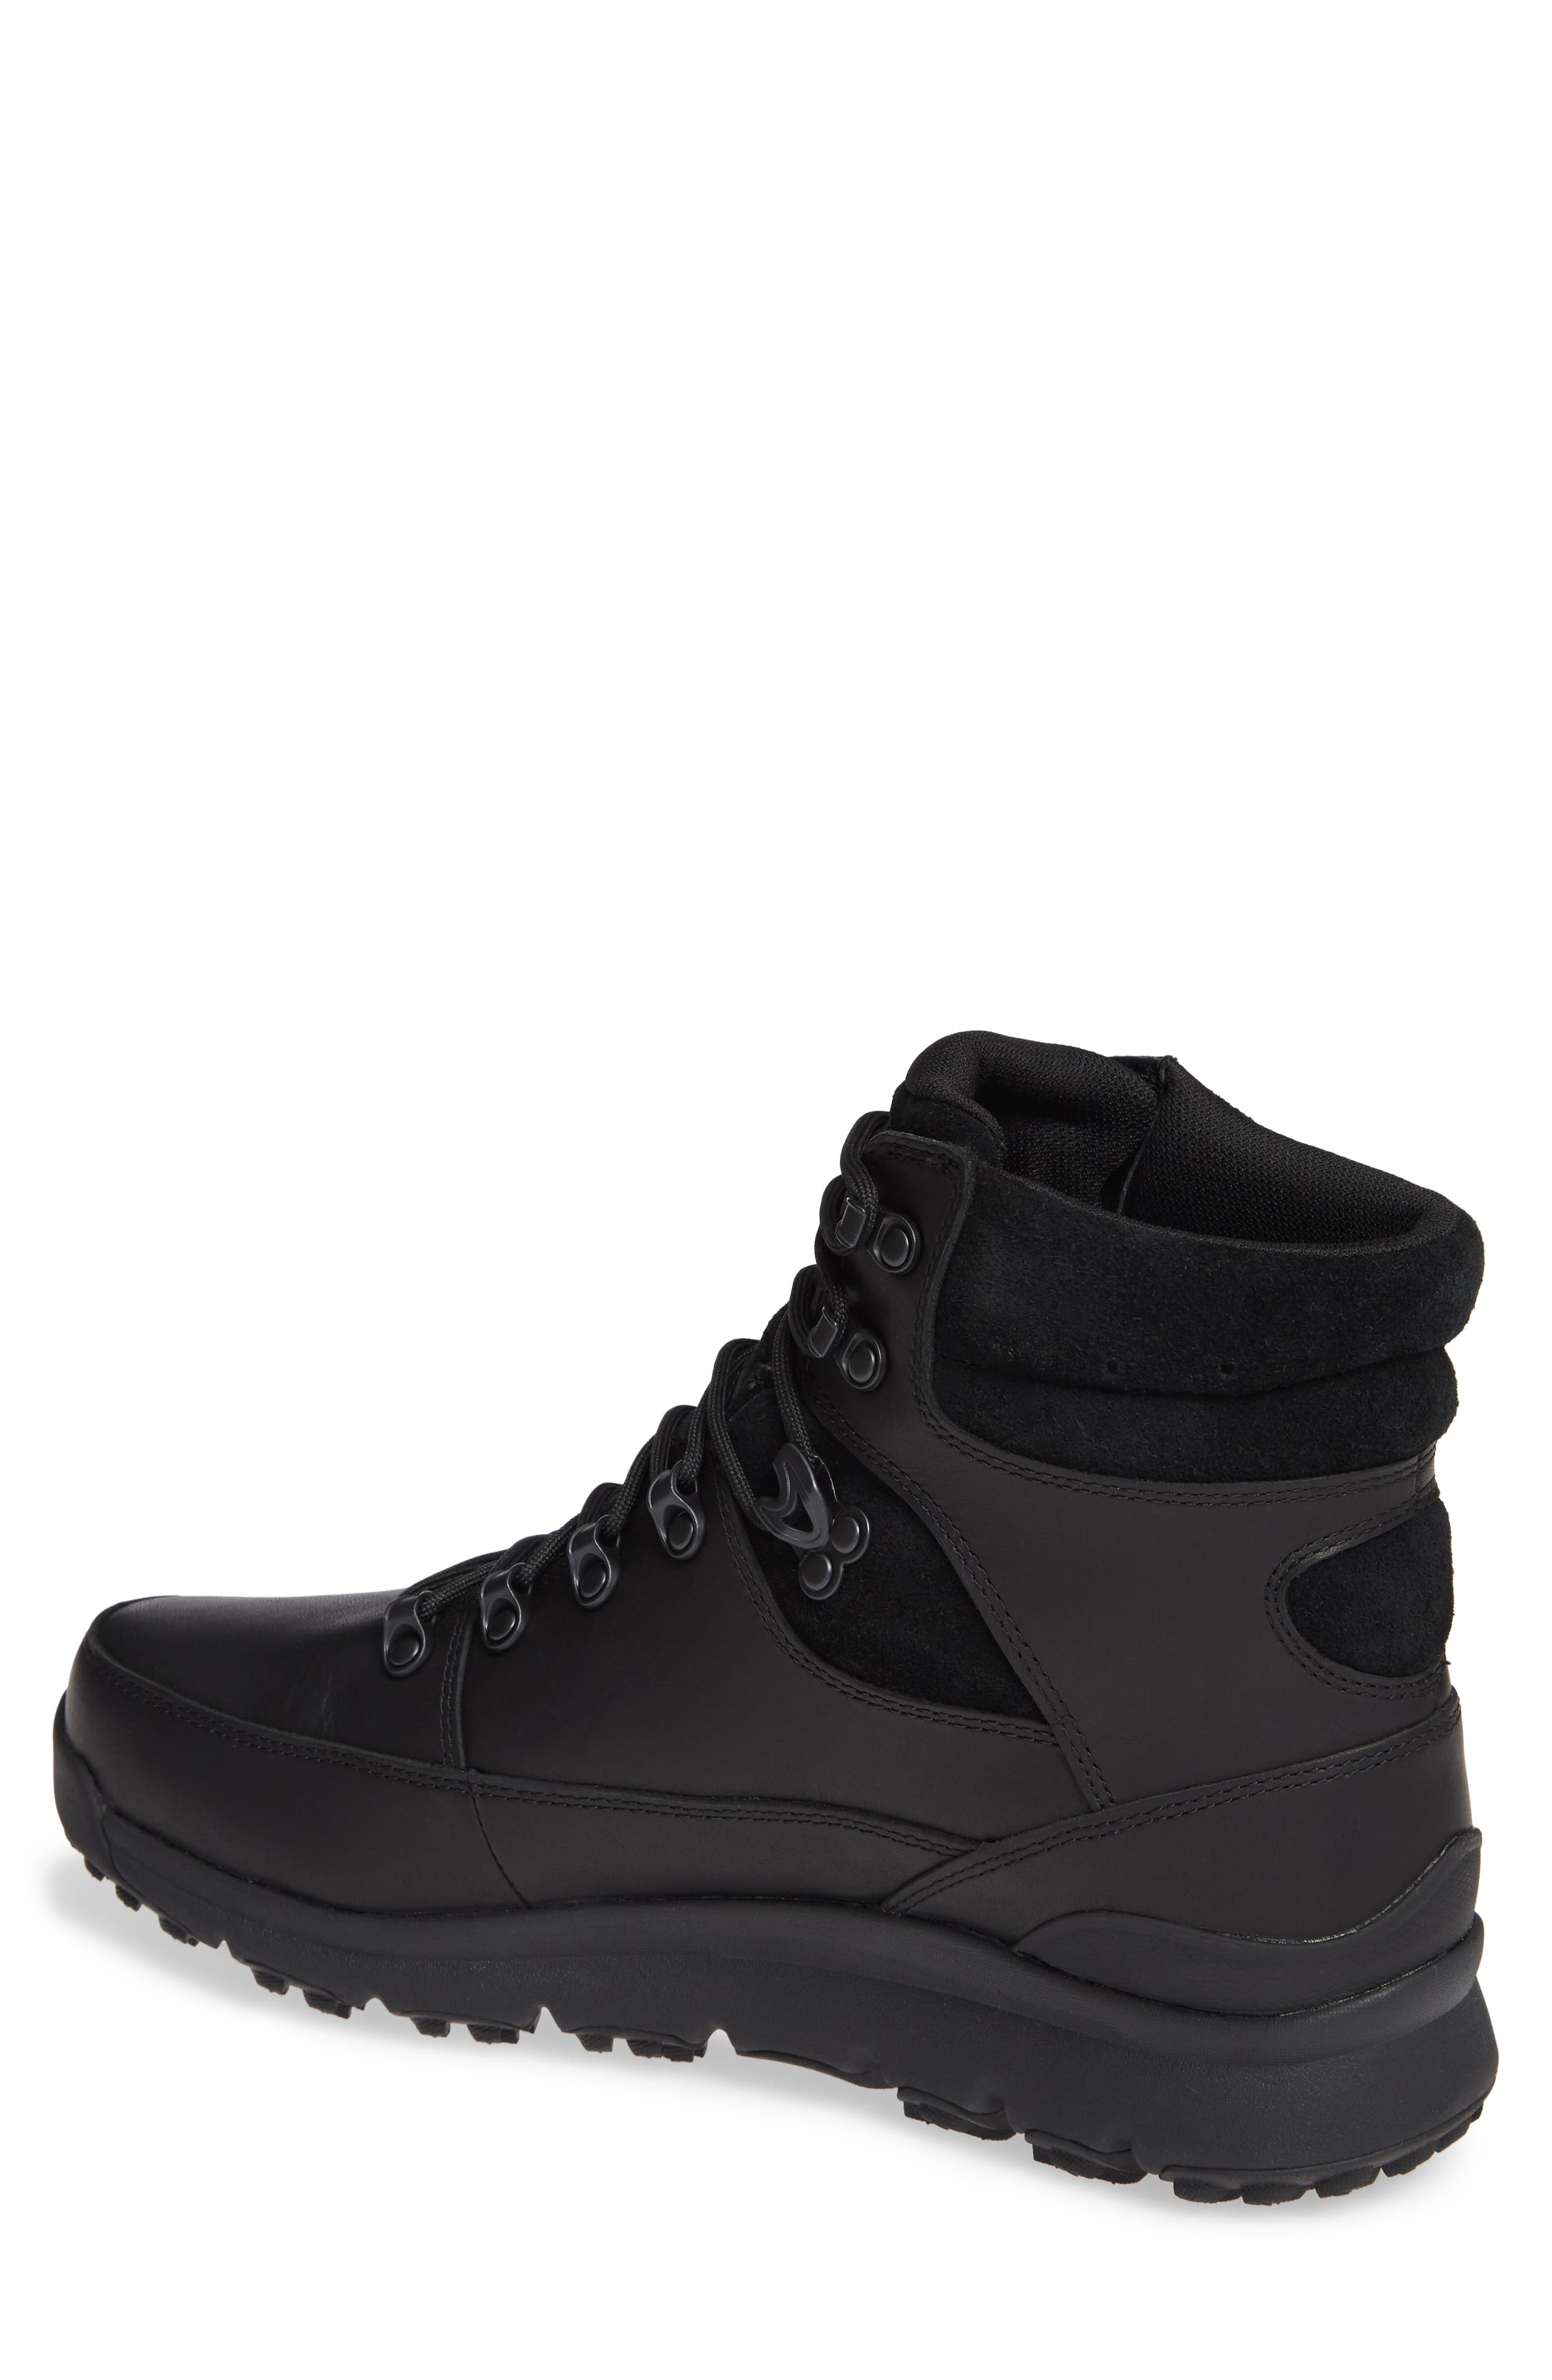 World Hiker Waterproof Boot,                             Alternate thumbnail 2, color,                             BLACK LEATHER